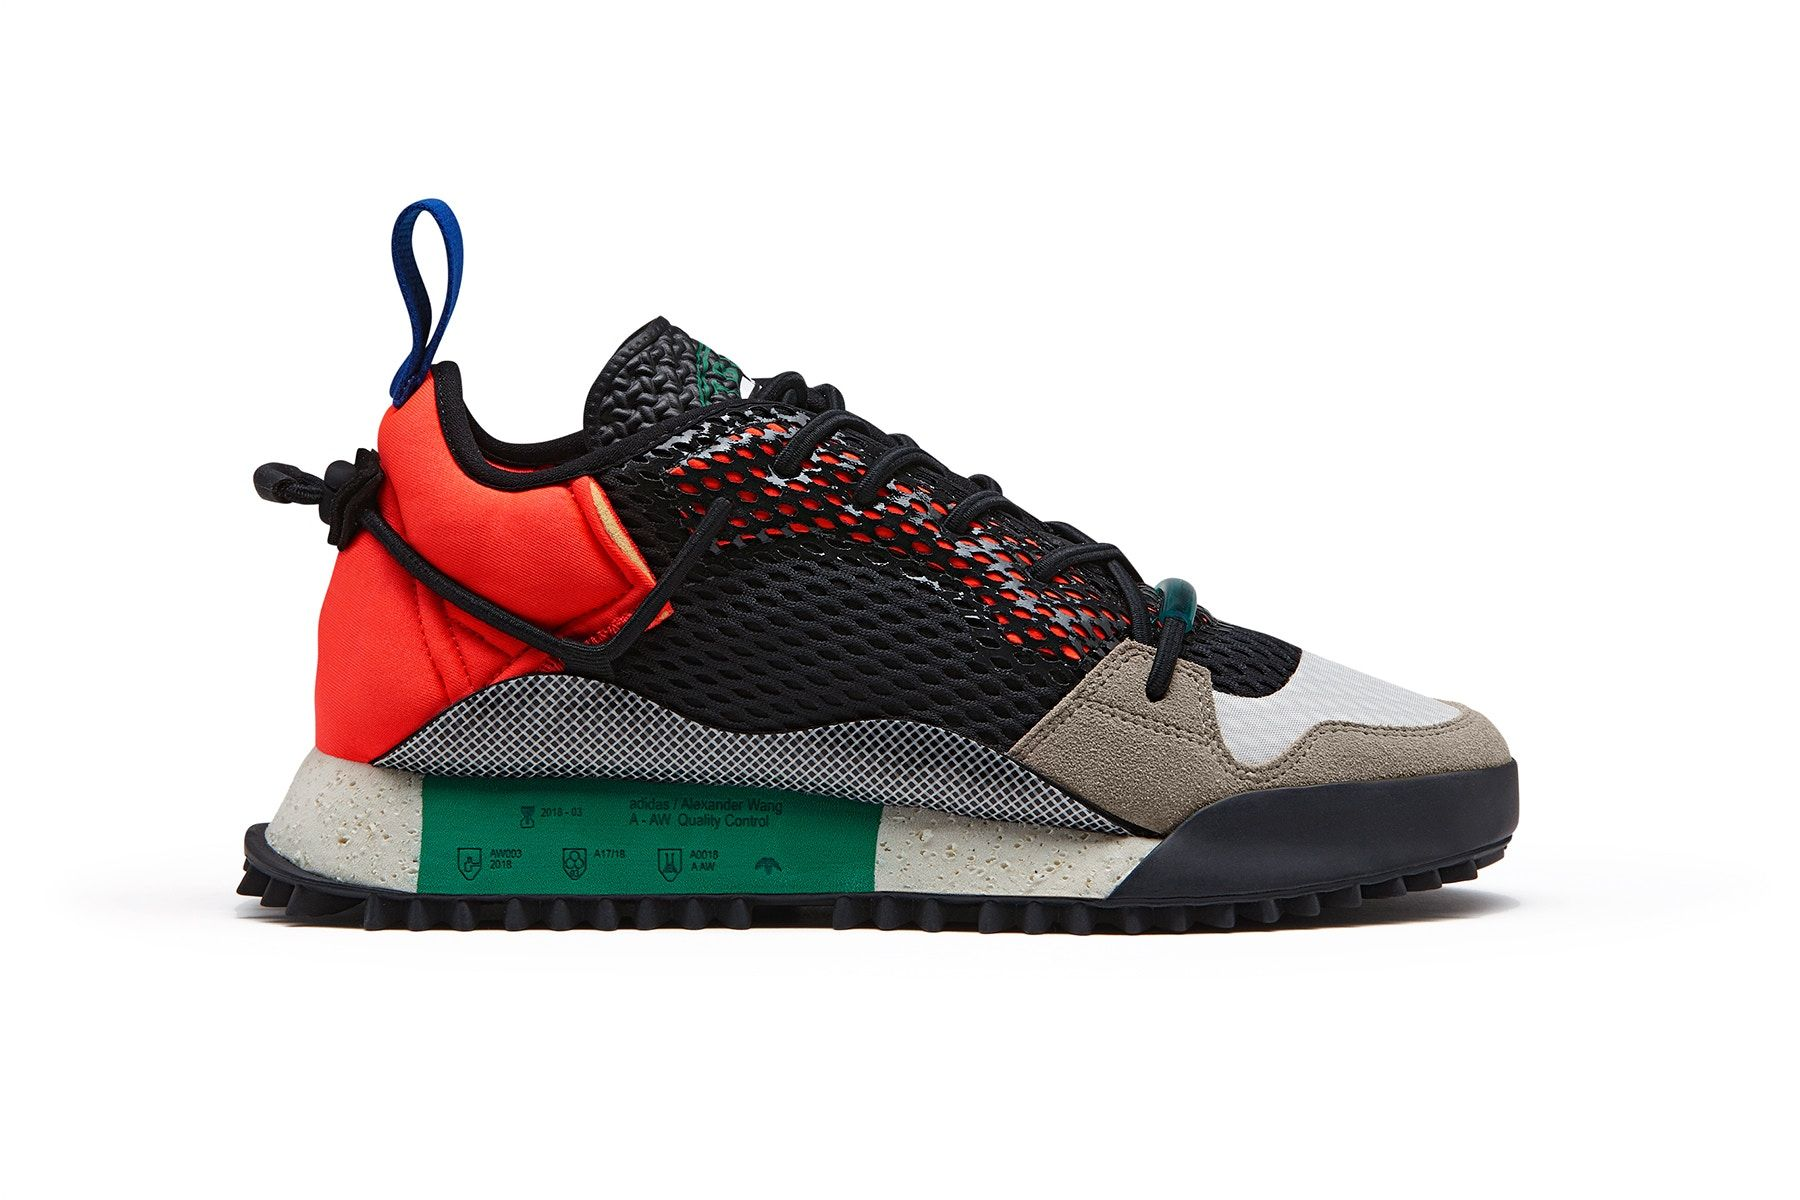 According to Alexander Wang's Latest Collection with Adidas